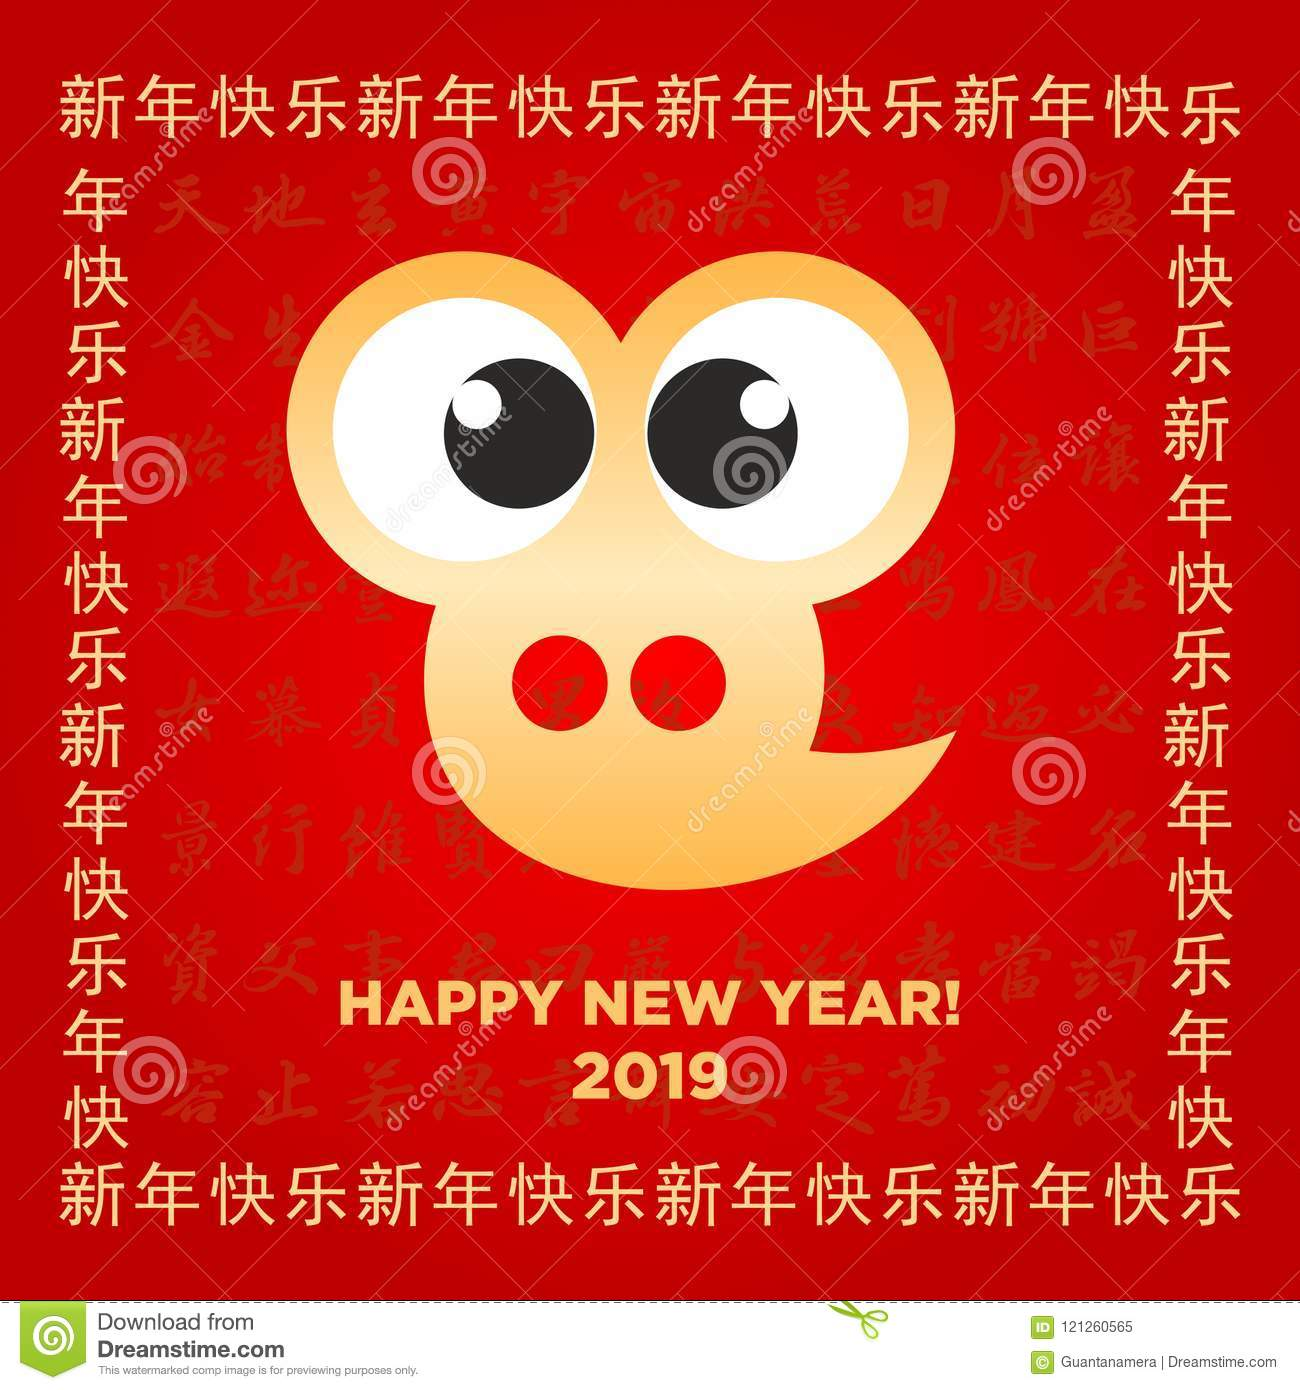 2019 happy new year chinese pig zodiac minimal modern sign card and